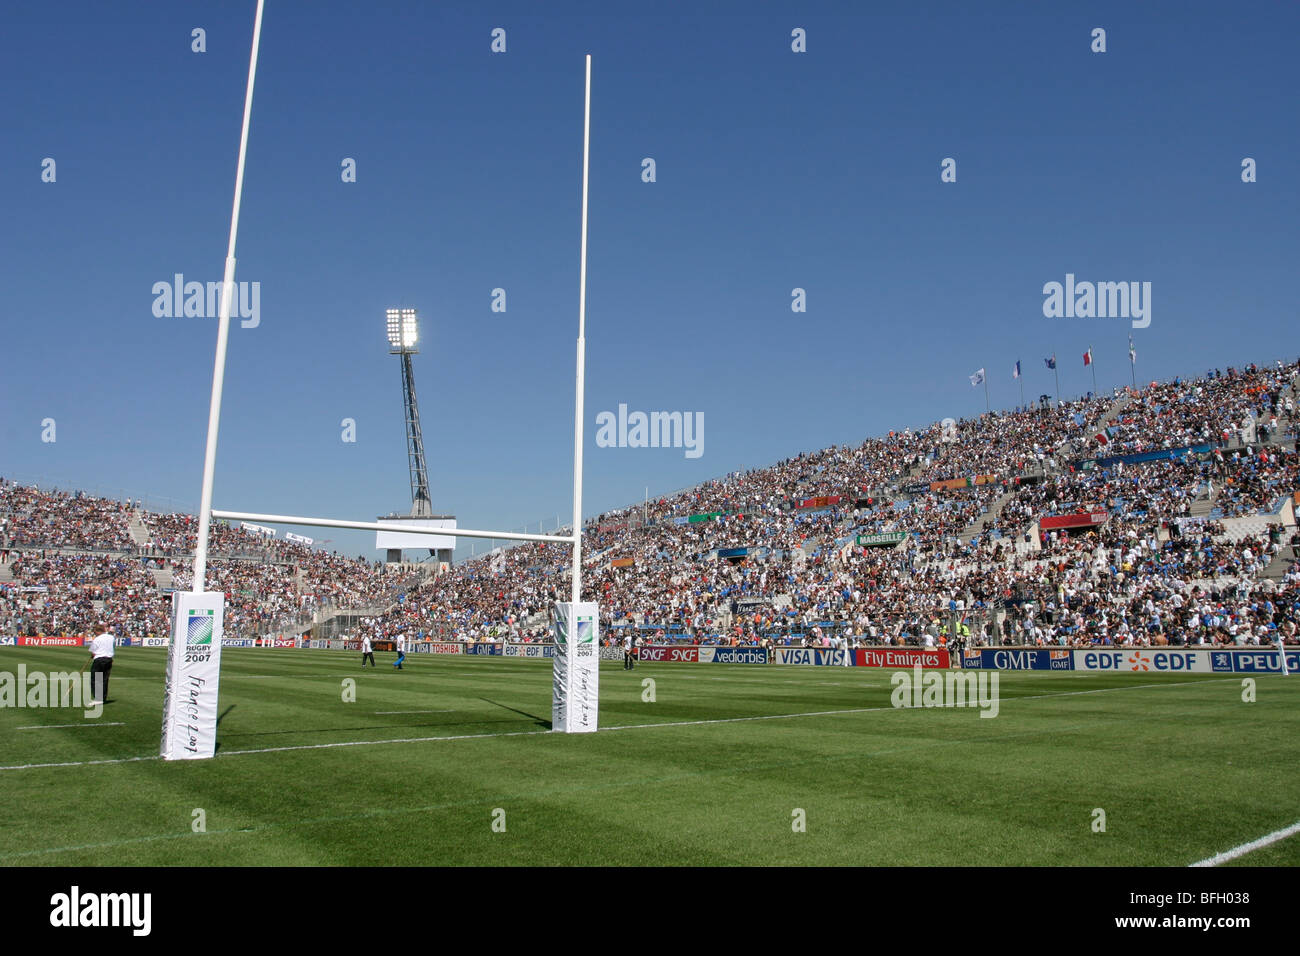 French Rugby stadium in Marseille, Stade Velodrome, host for the Rugby World Cup 2007 - Stock Image